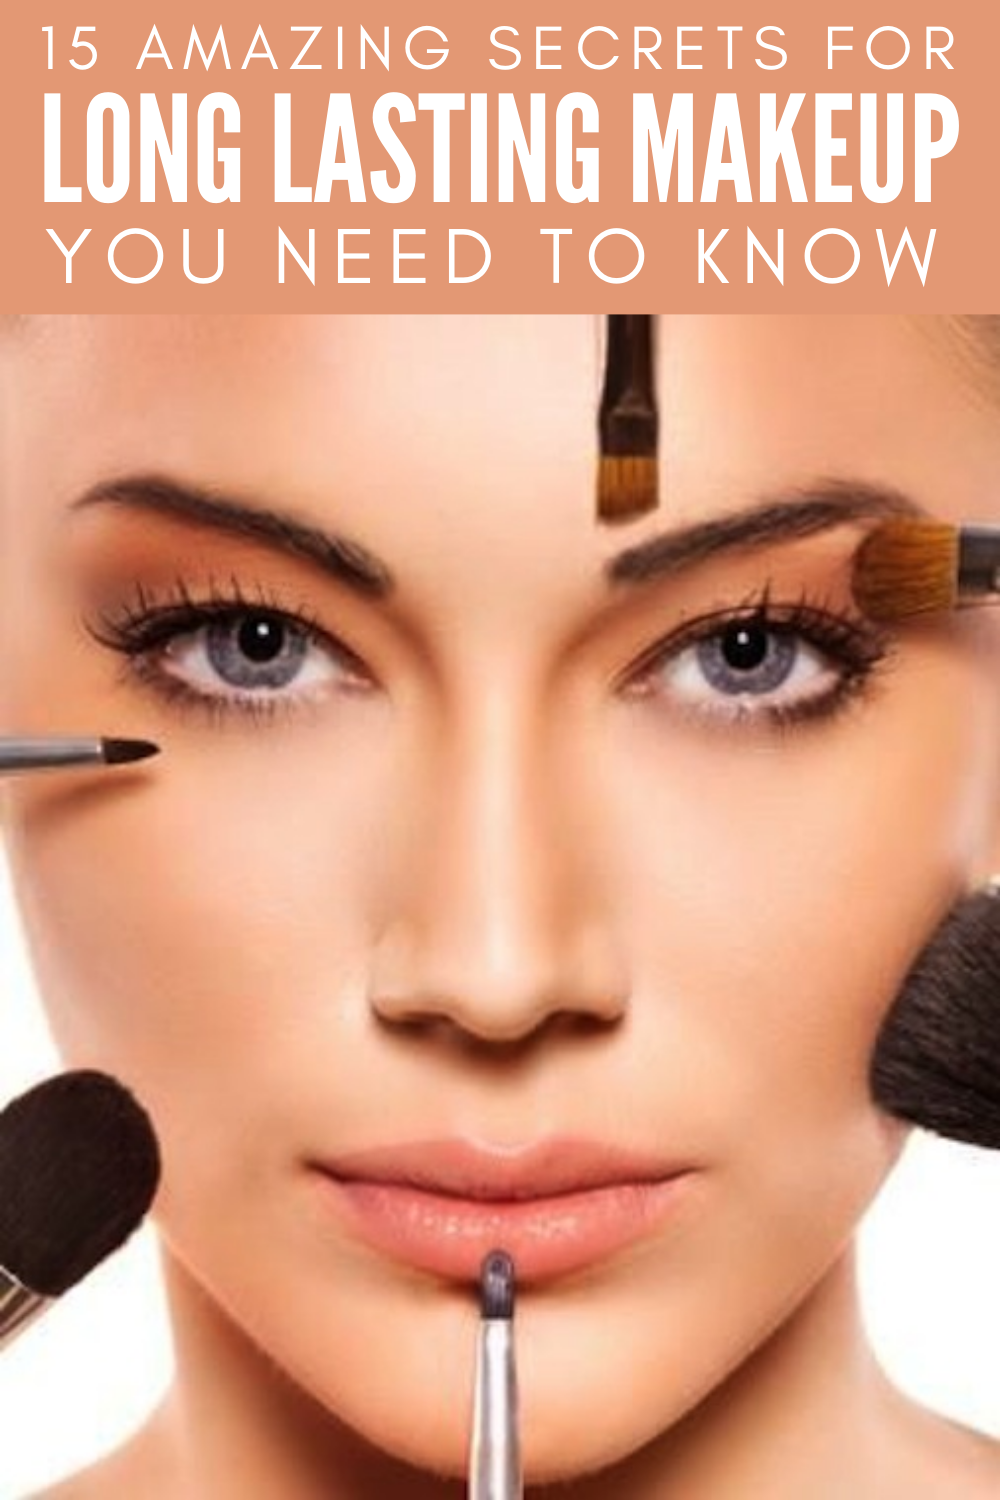 8 Secrets For A Long Lasting Makeup That You May Not Know Before